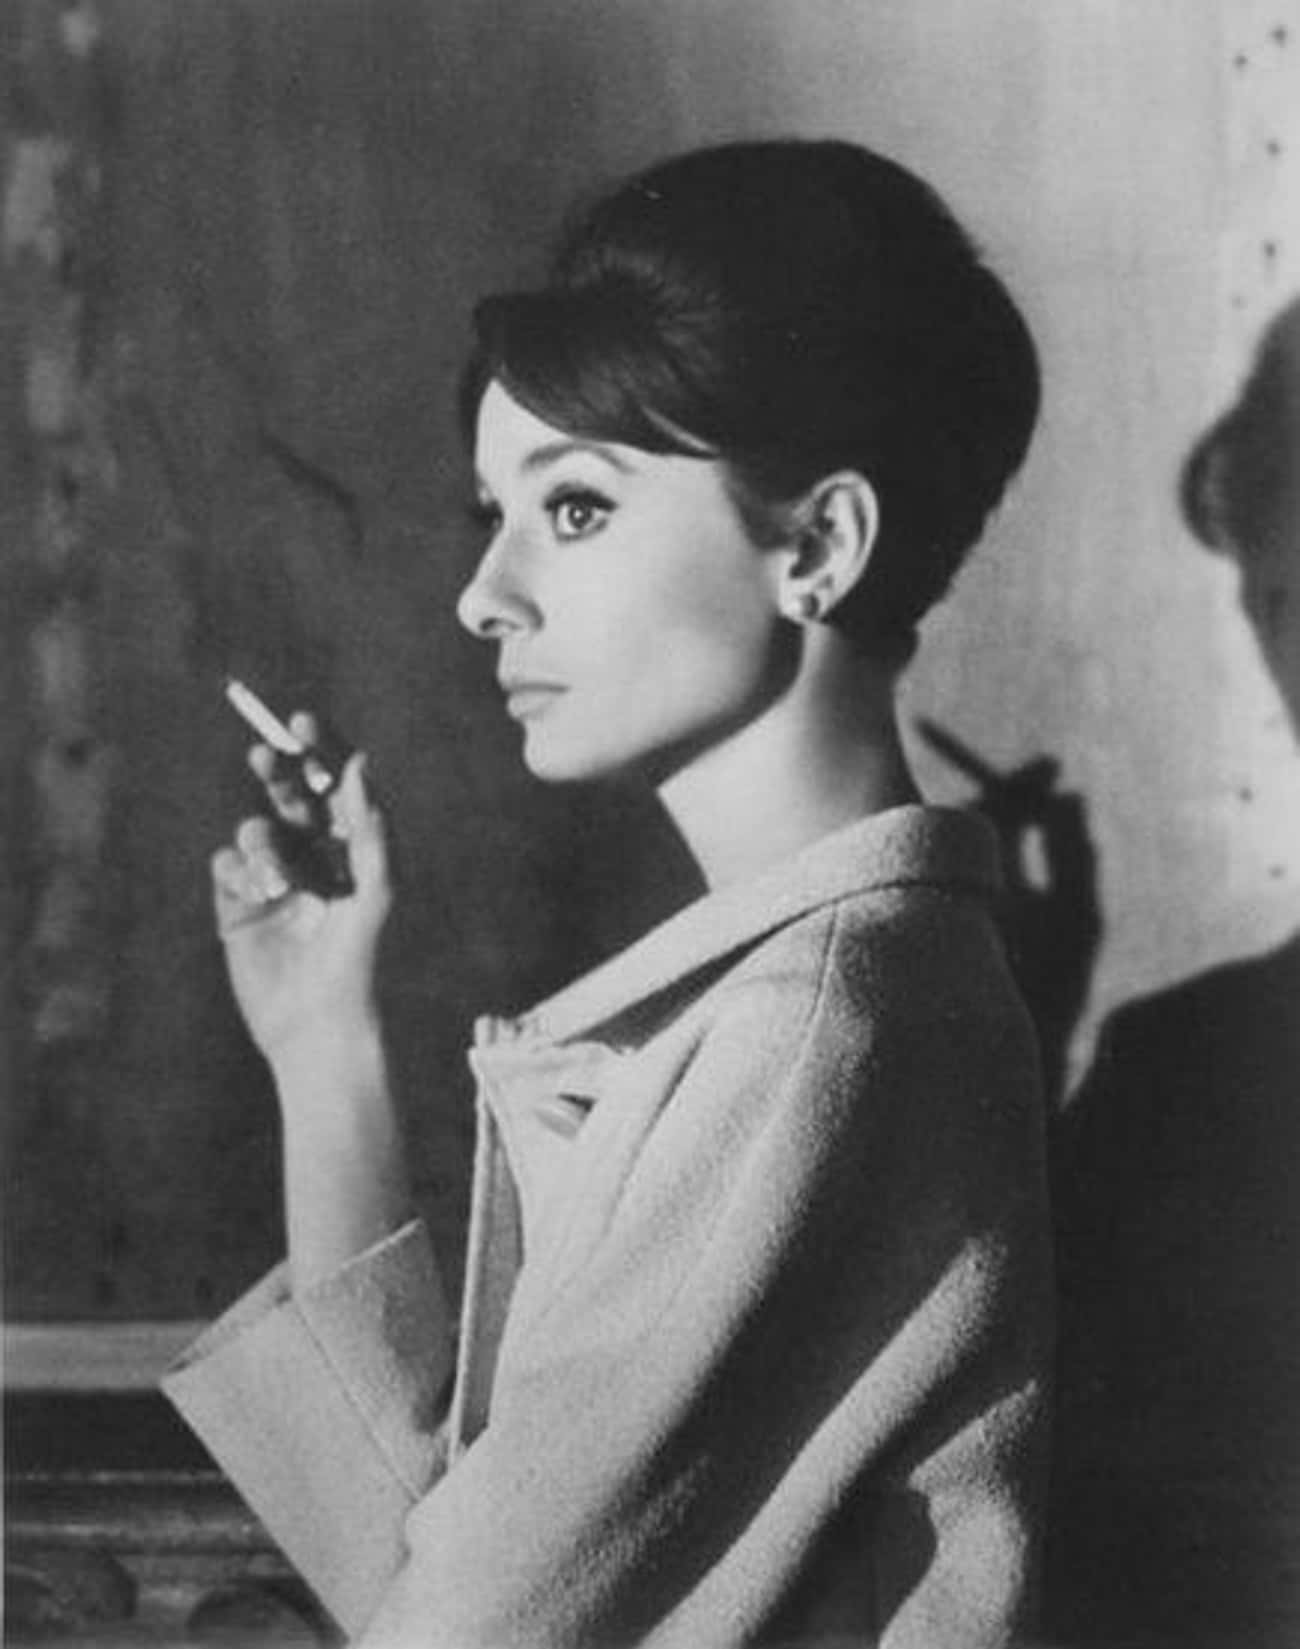 Hepburn Was A Heavy Smoker is listed (or ranked) 3 on the list Interesting Facts About Audrey Hepburn's Life You Probably Never Knew